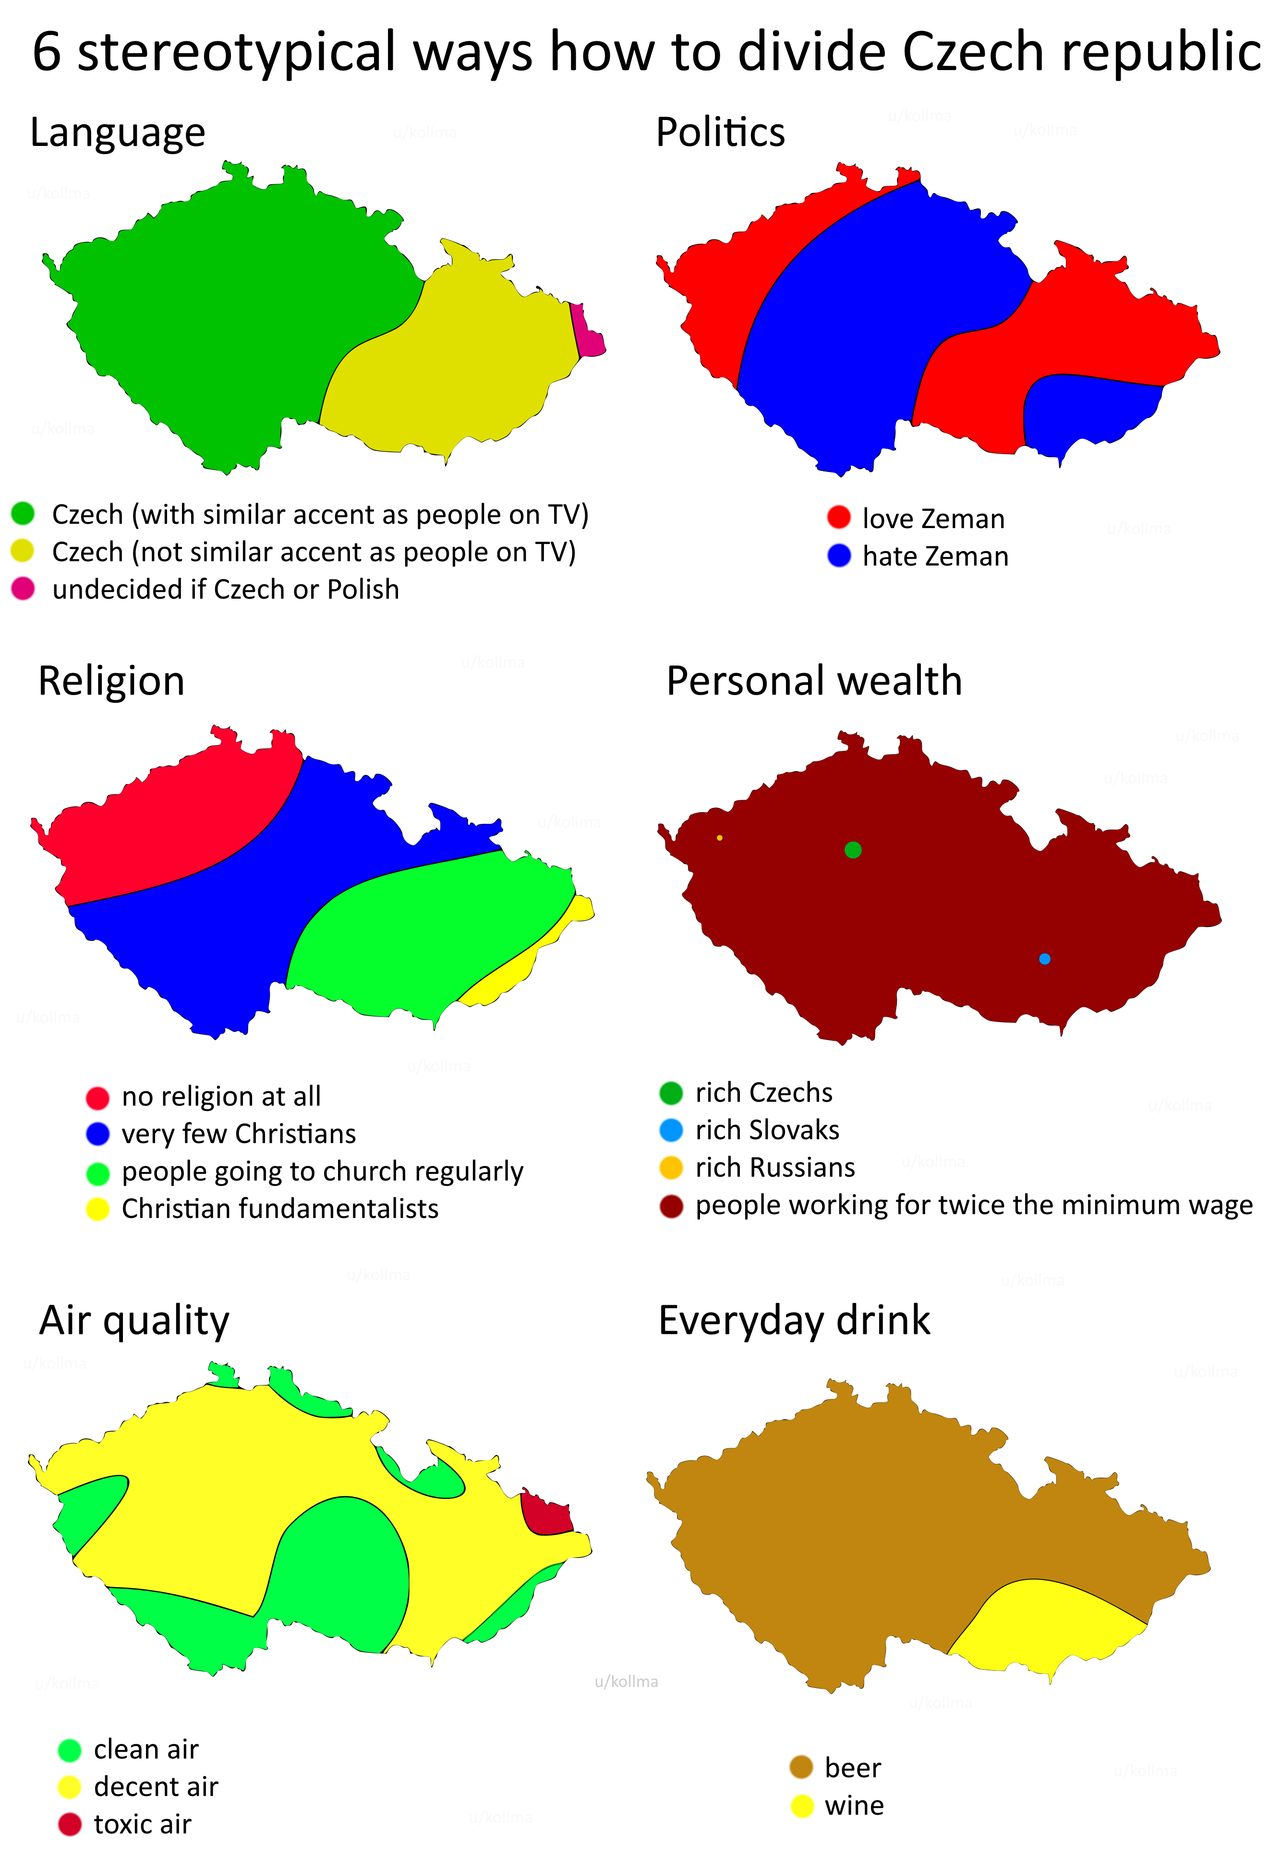 Six stereotypical ways how to divide Czech Republic